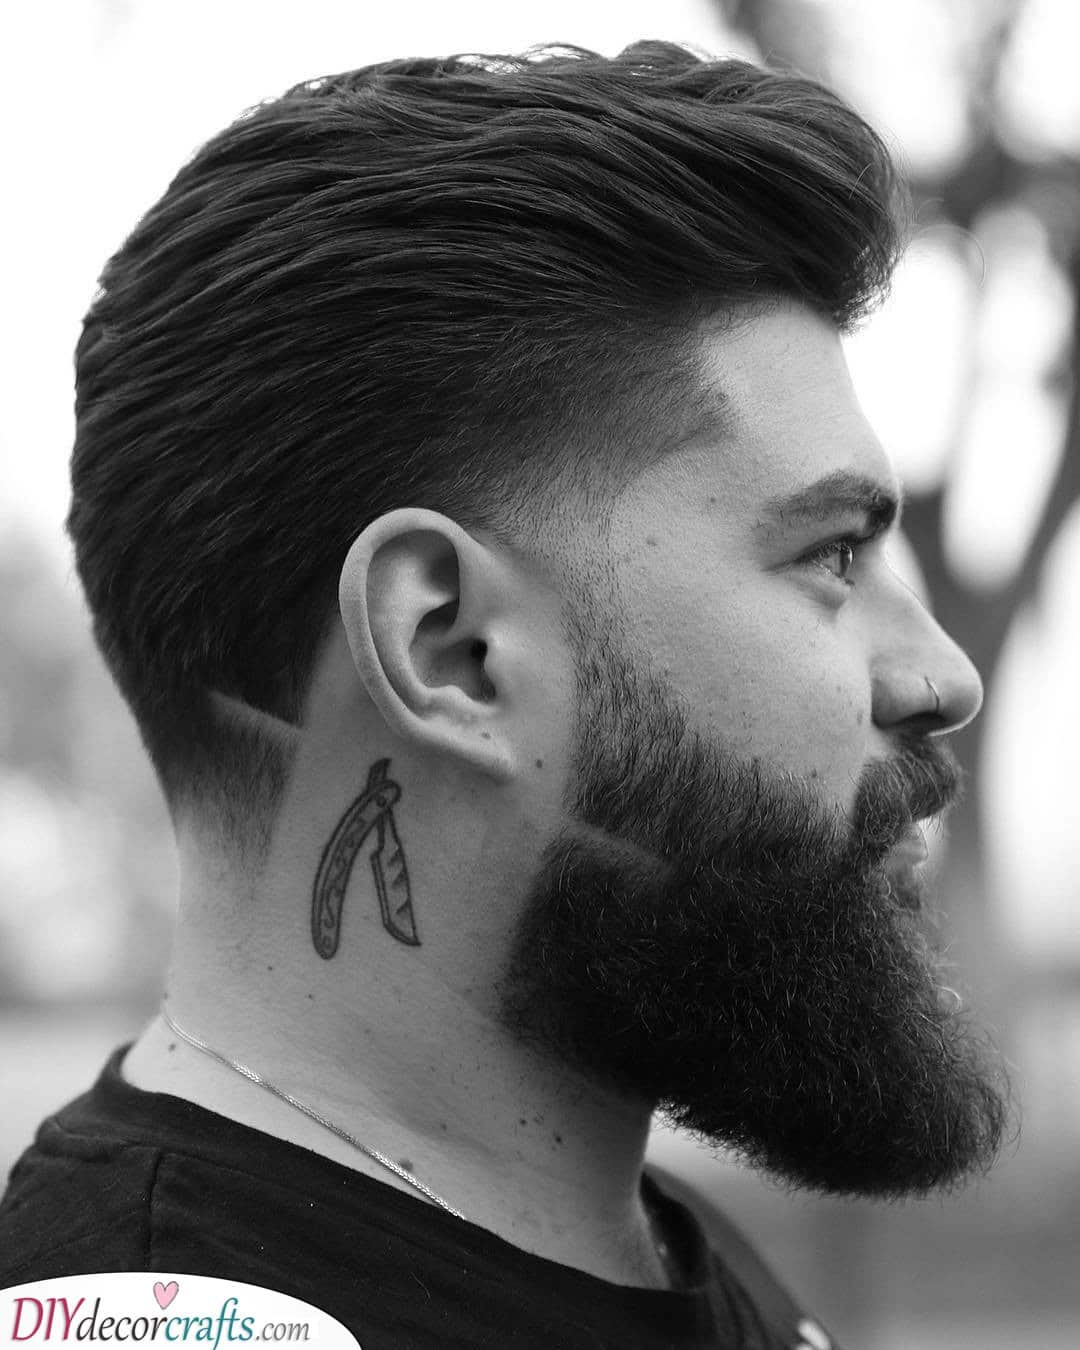 A Ducktail - With a Fade